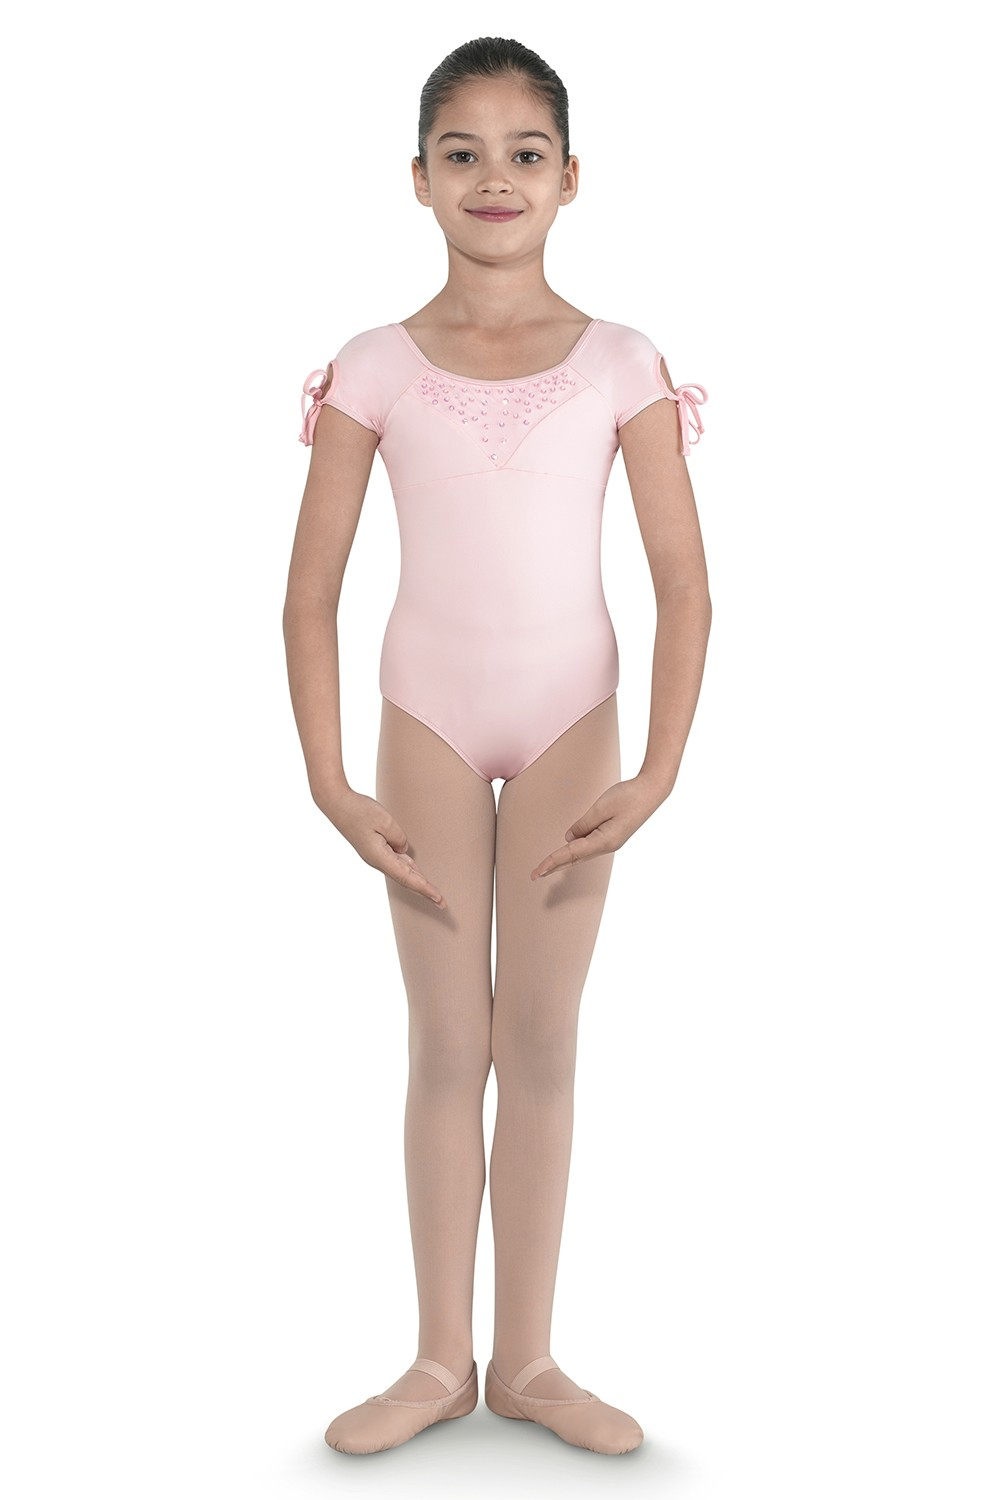 Allori Children's Dance Leotards